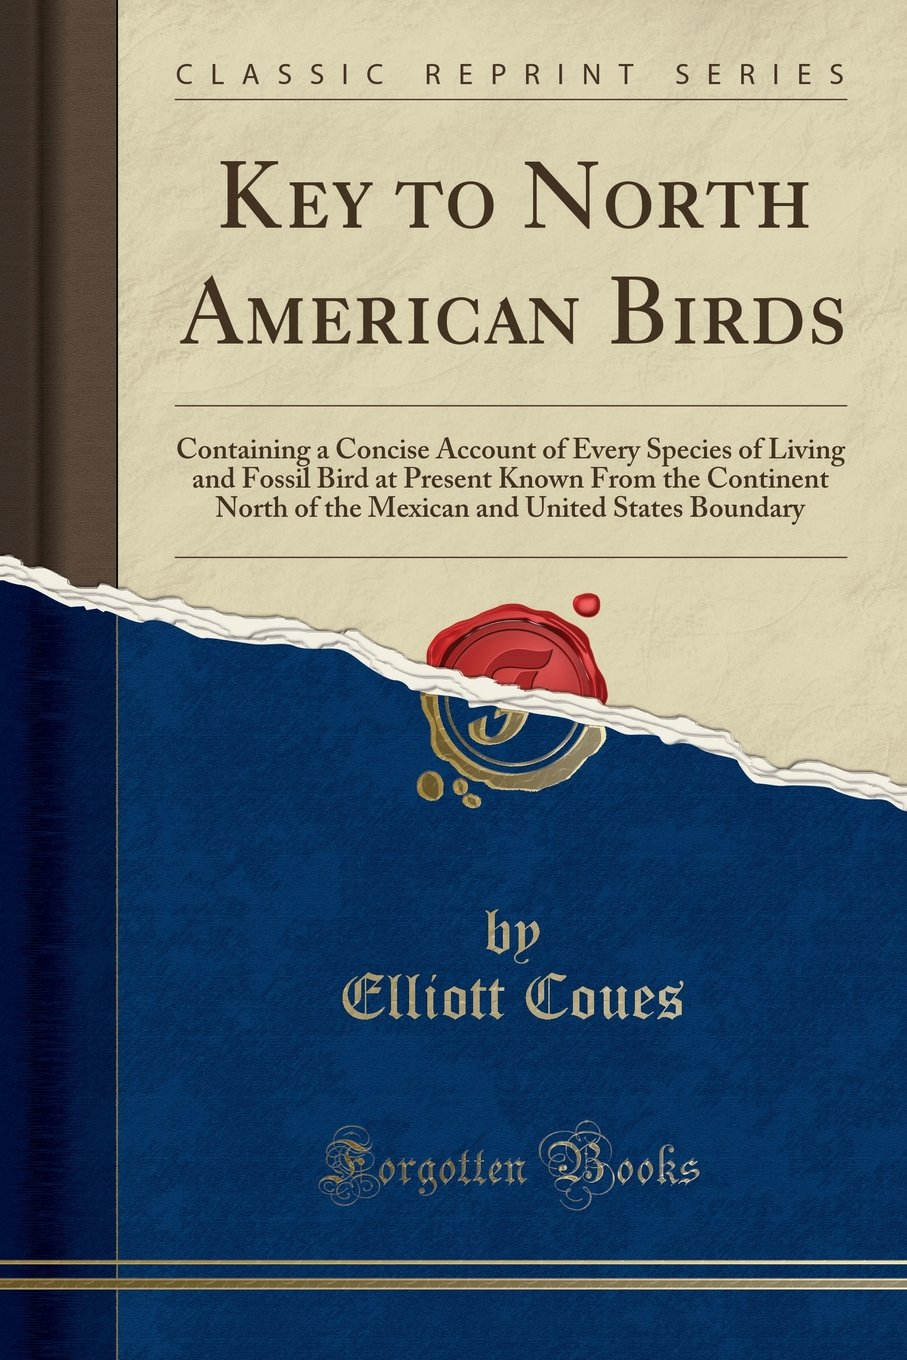 Key to North American Birds: Containing a Concise Account of Every Species of Living and Fossil Bird at Present Known From the Continent North of the ... and United States Boundary (Classic Reprint) PDF